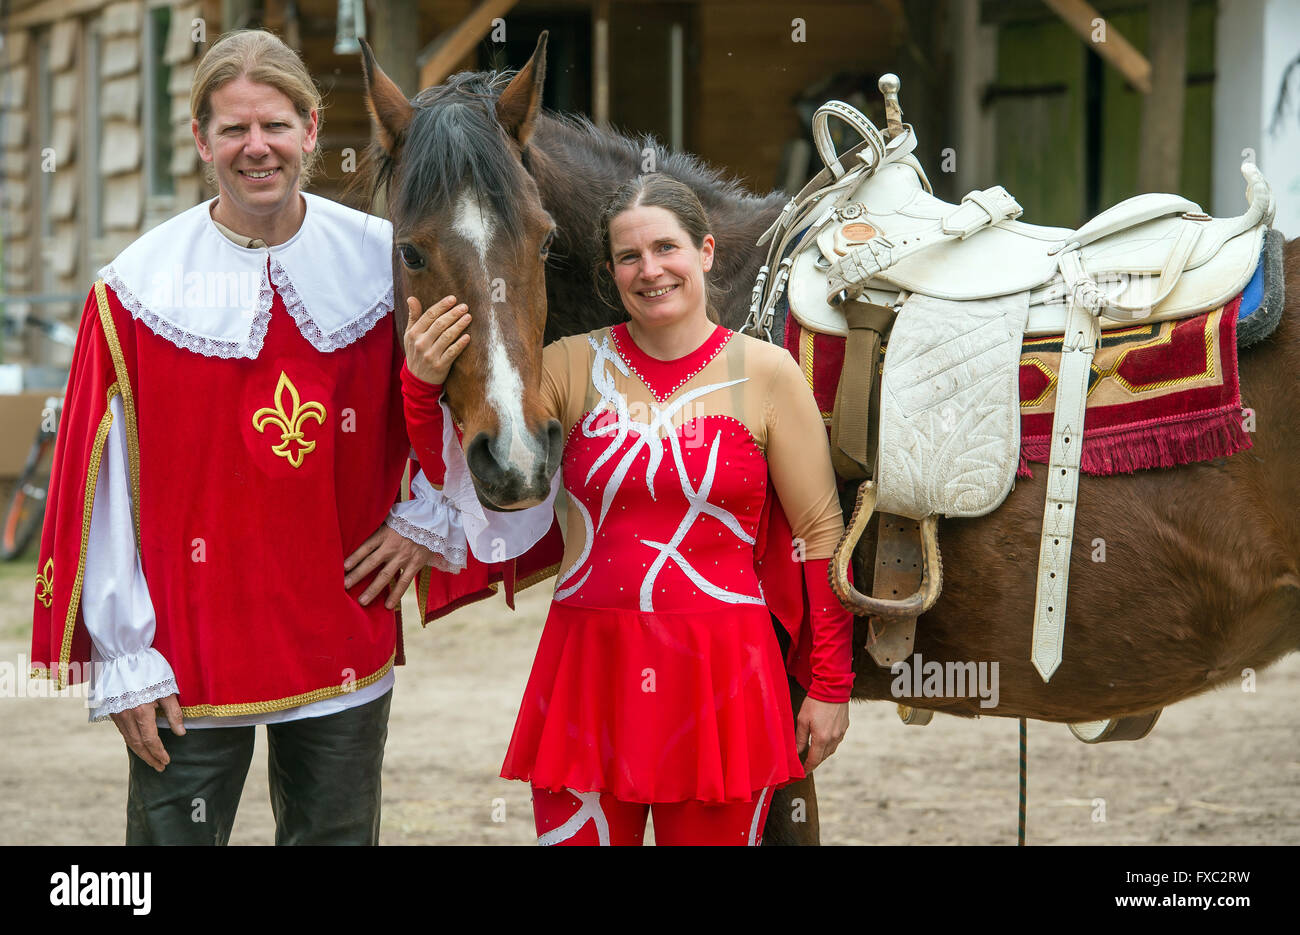 Muencheberg, Germany. 04th Apr, 2016. Stunt riders Christian Scholle-Prestin and his life partner Daja Ziefuss pose - Stock Image